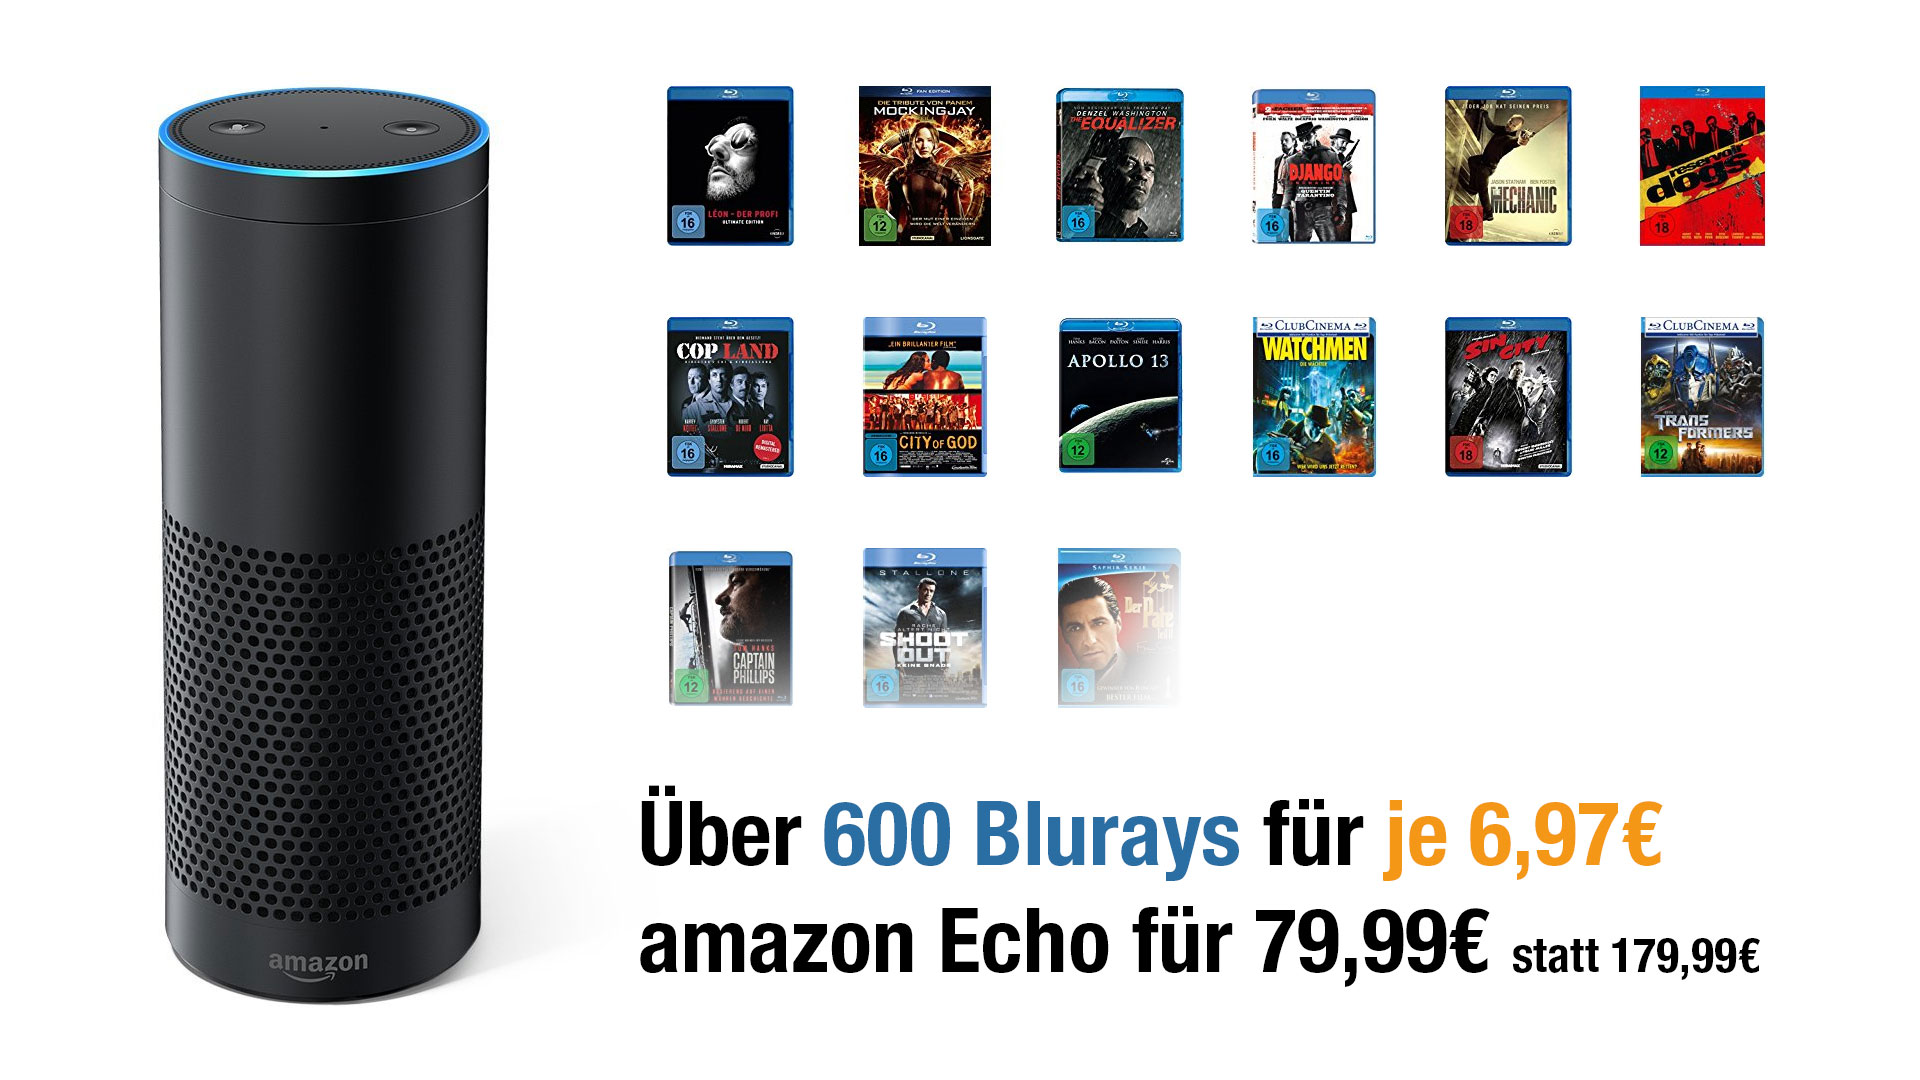 ueber 600 blurays auf amazon reduziert und echo im. Black Bedroom Furniture Sets. Home Design Ideas